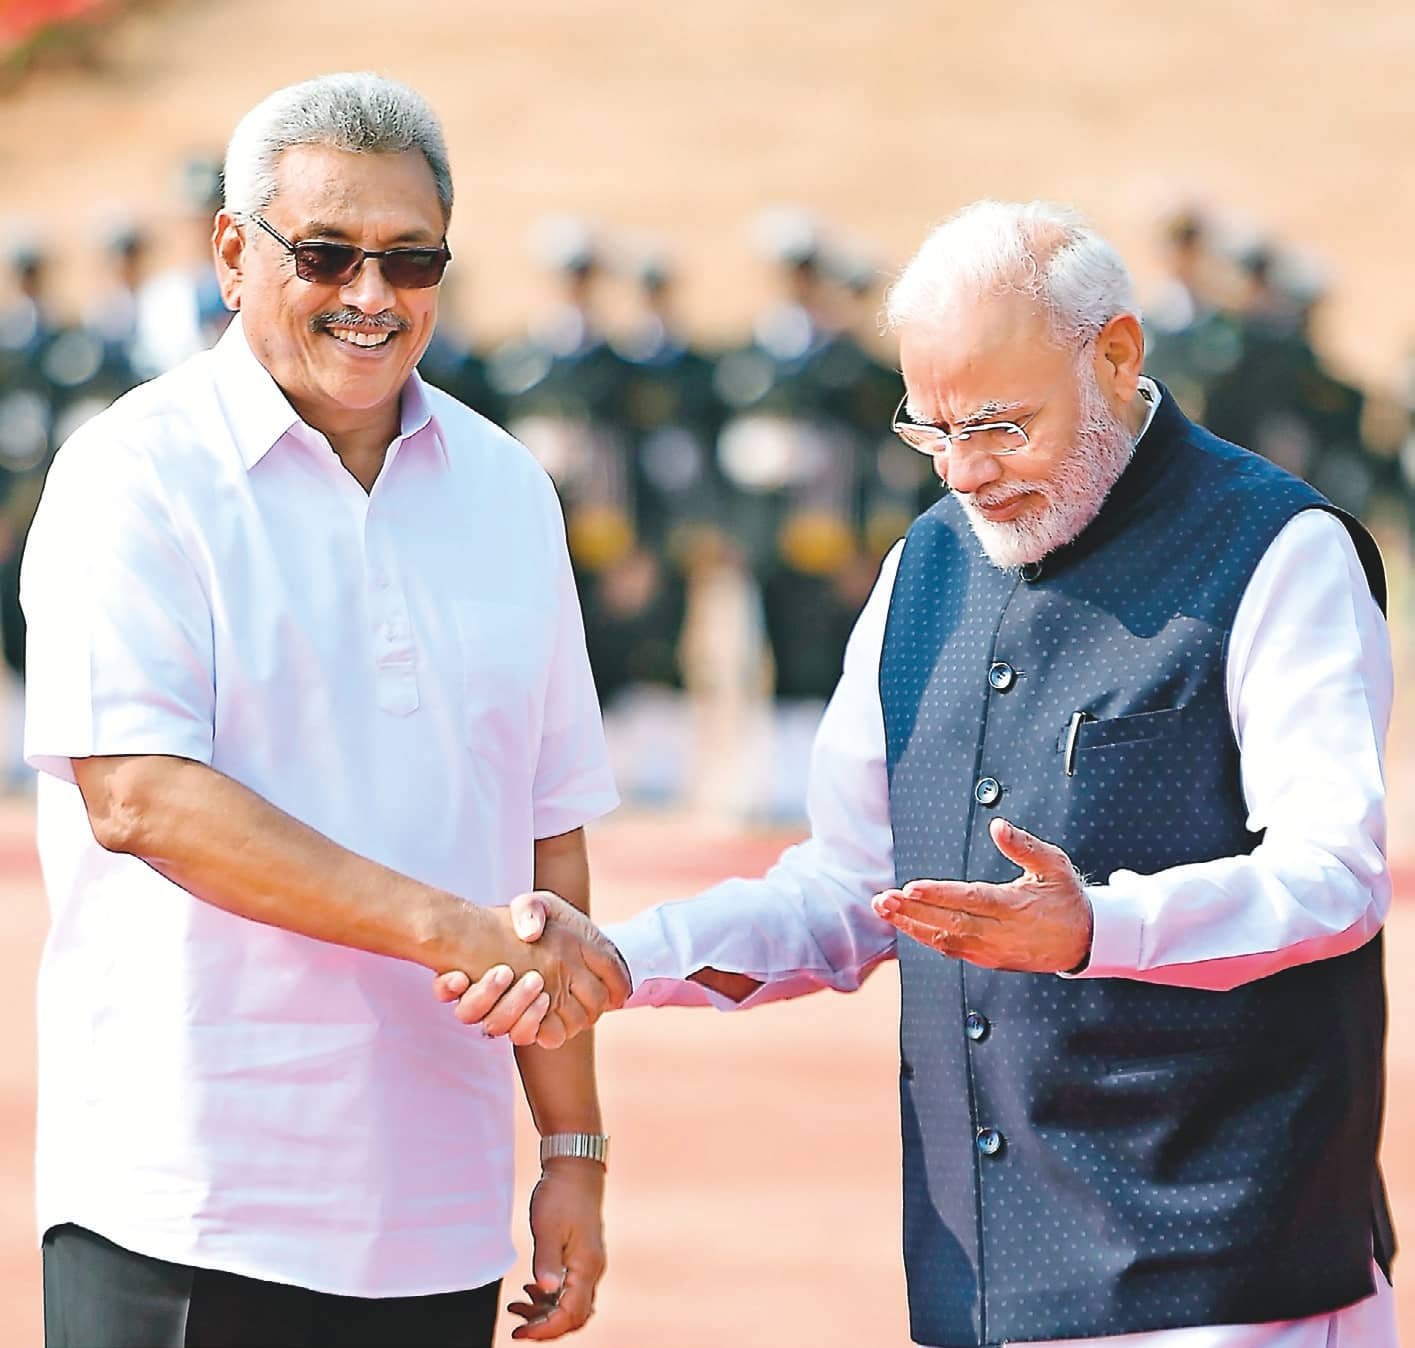 FRESH APPROACH FOR JOINT VENTURES BETWEEN INDIA AND SRI LANKA